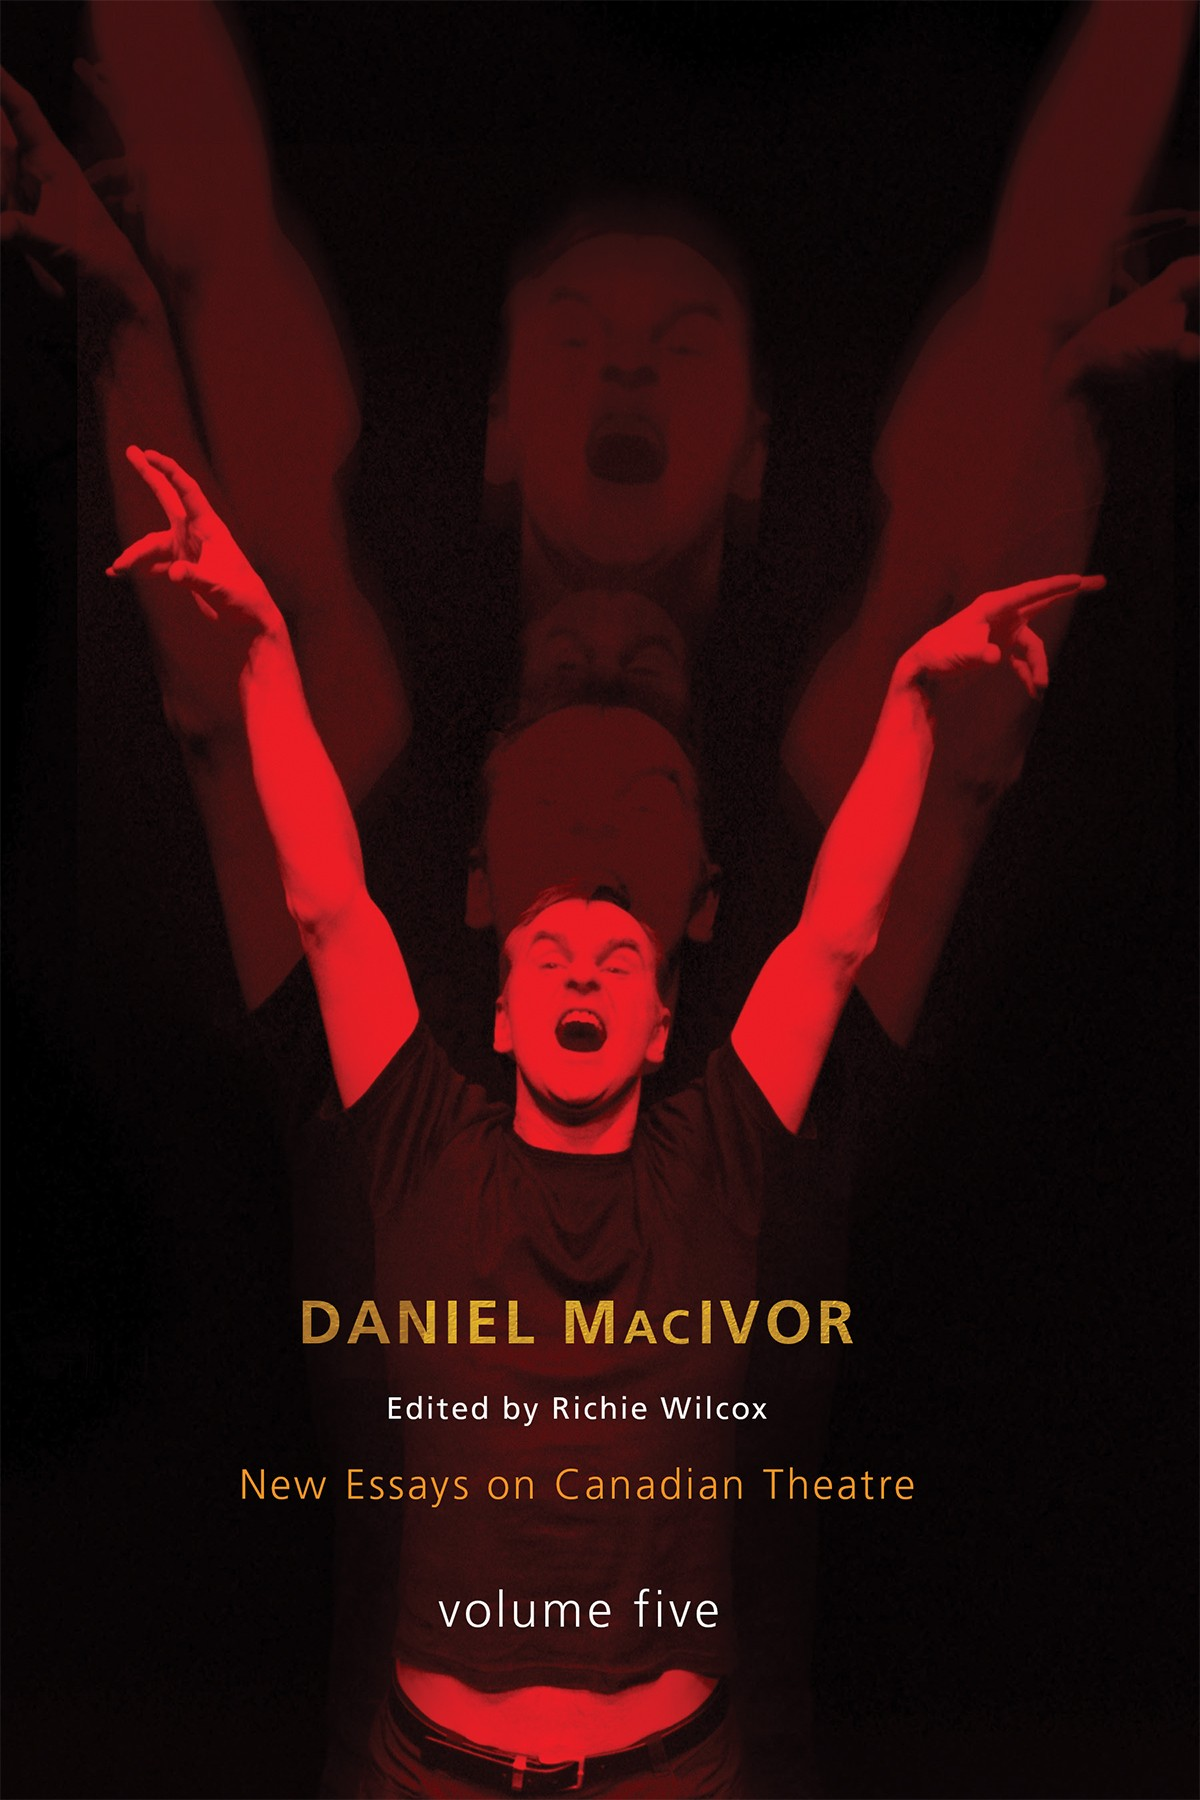 Daniel MacIvor (New Essays on Canadian Theatre) - Print